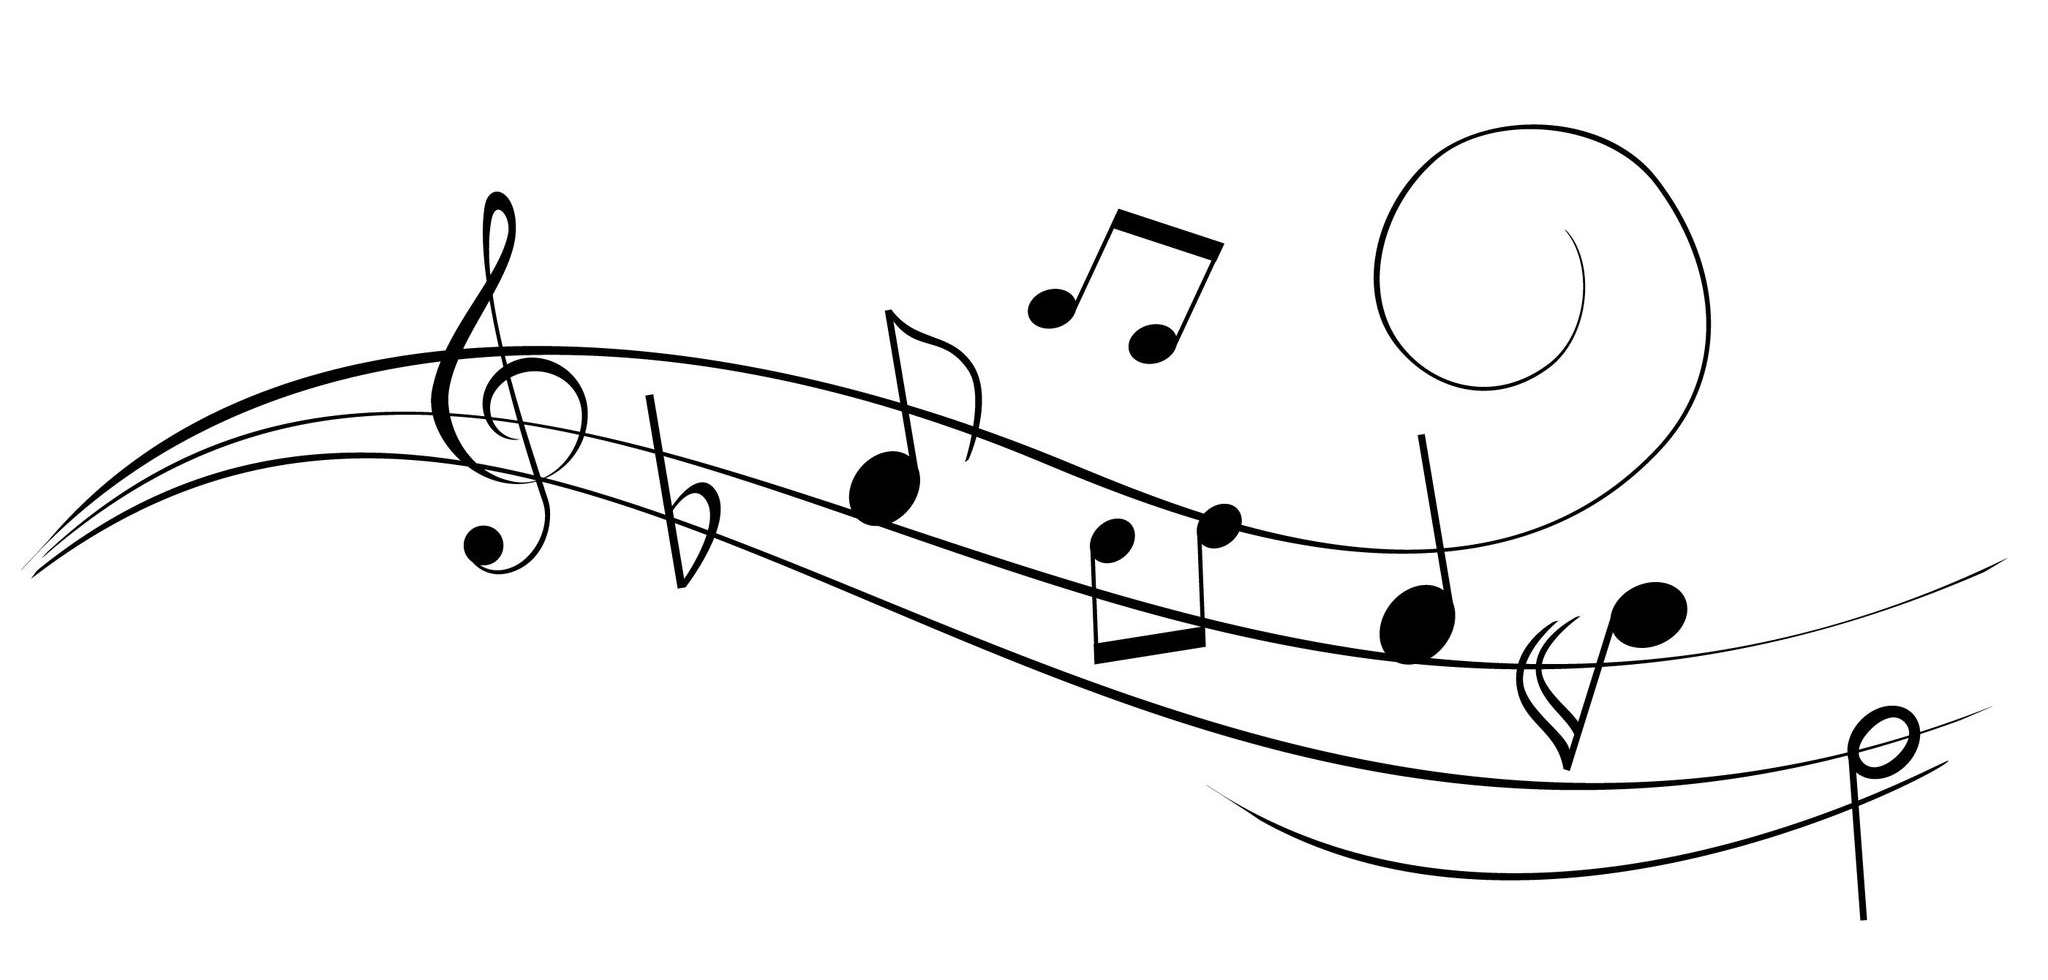 Music note png drawn. Free drawings download clip